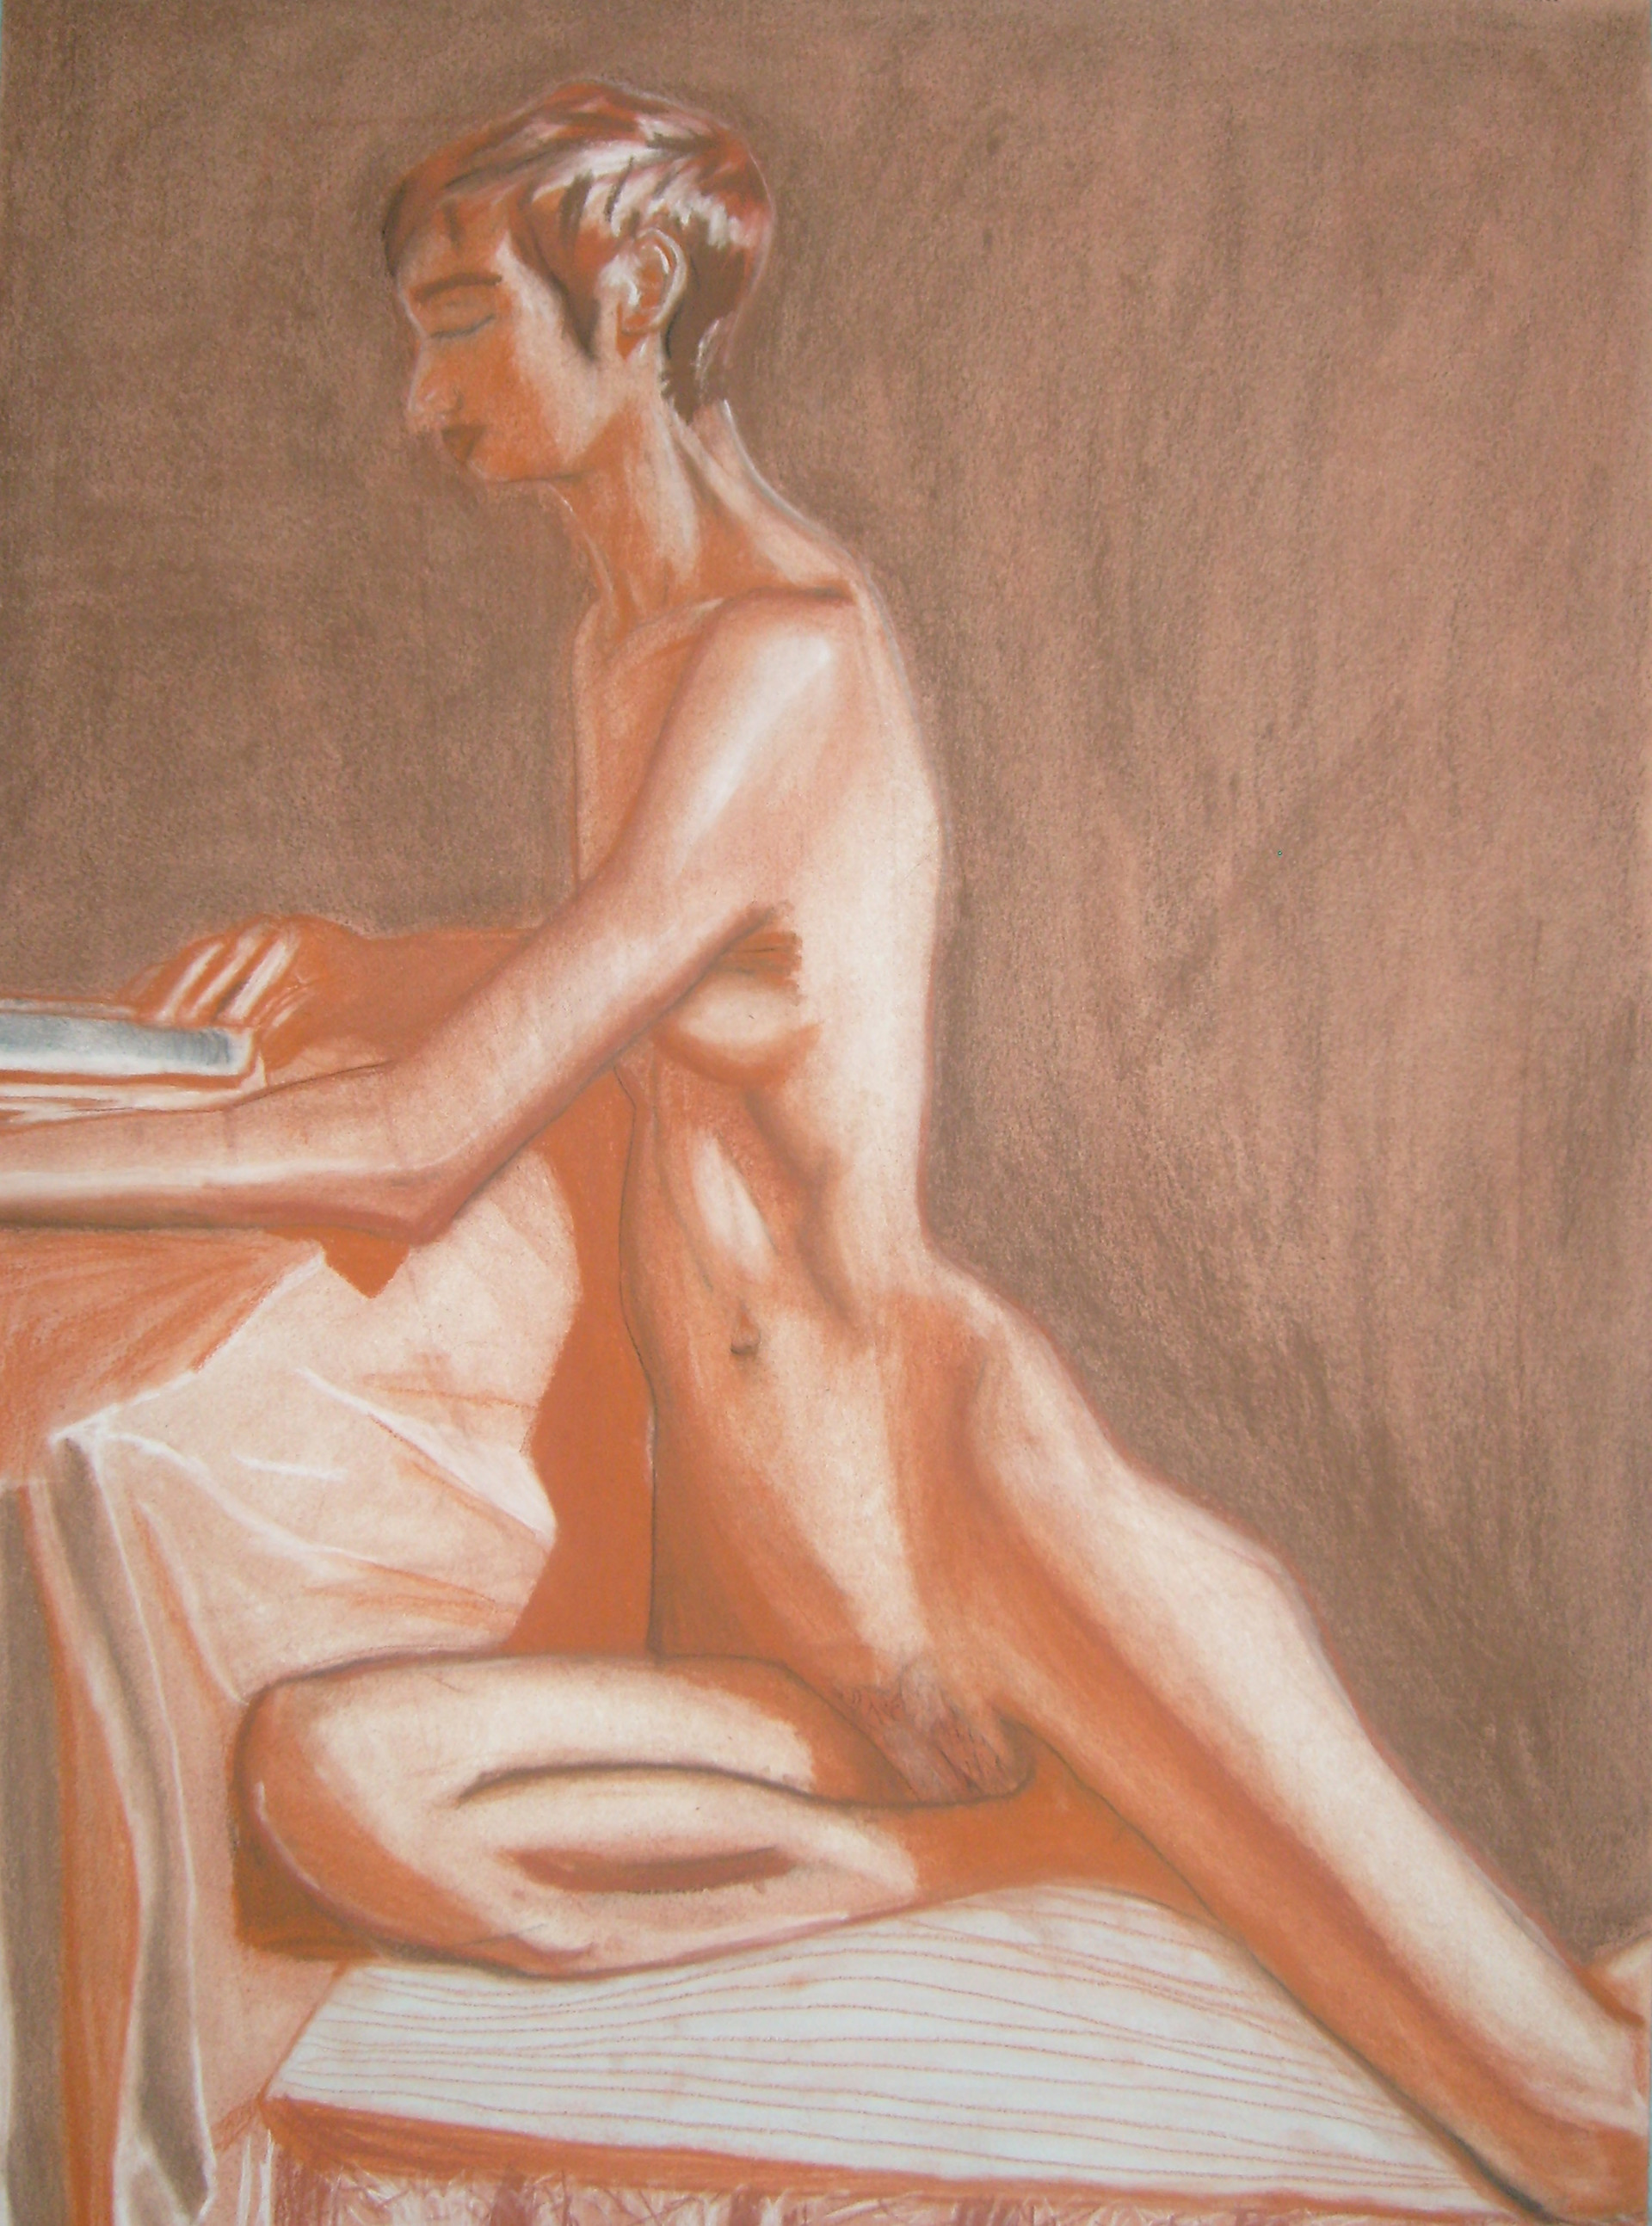 Antonio medina life drawing 001